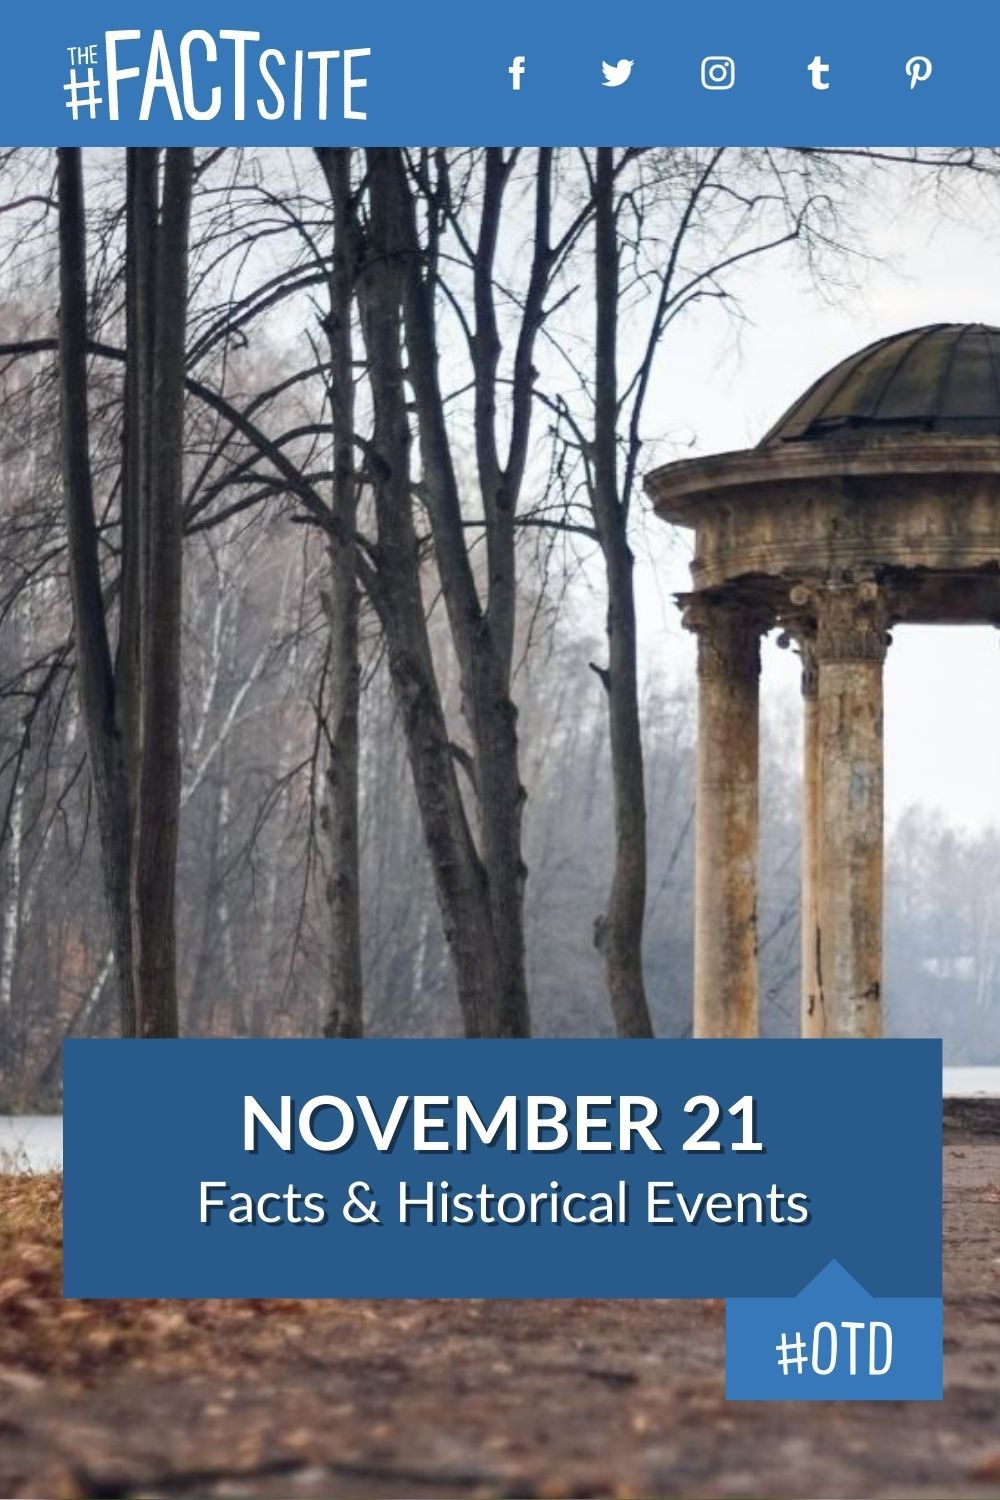 Facts & Historic Events That Happened on November 21